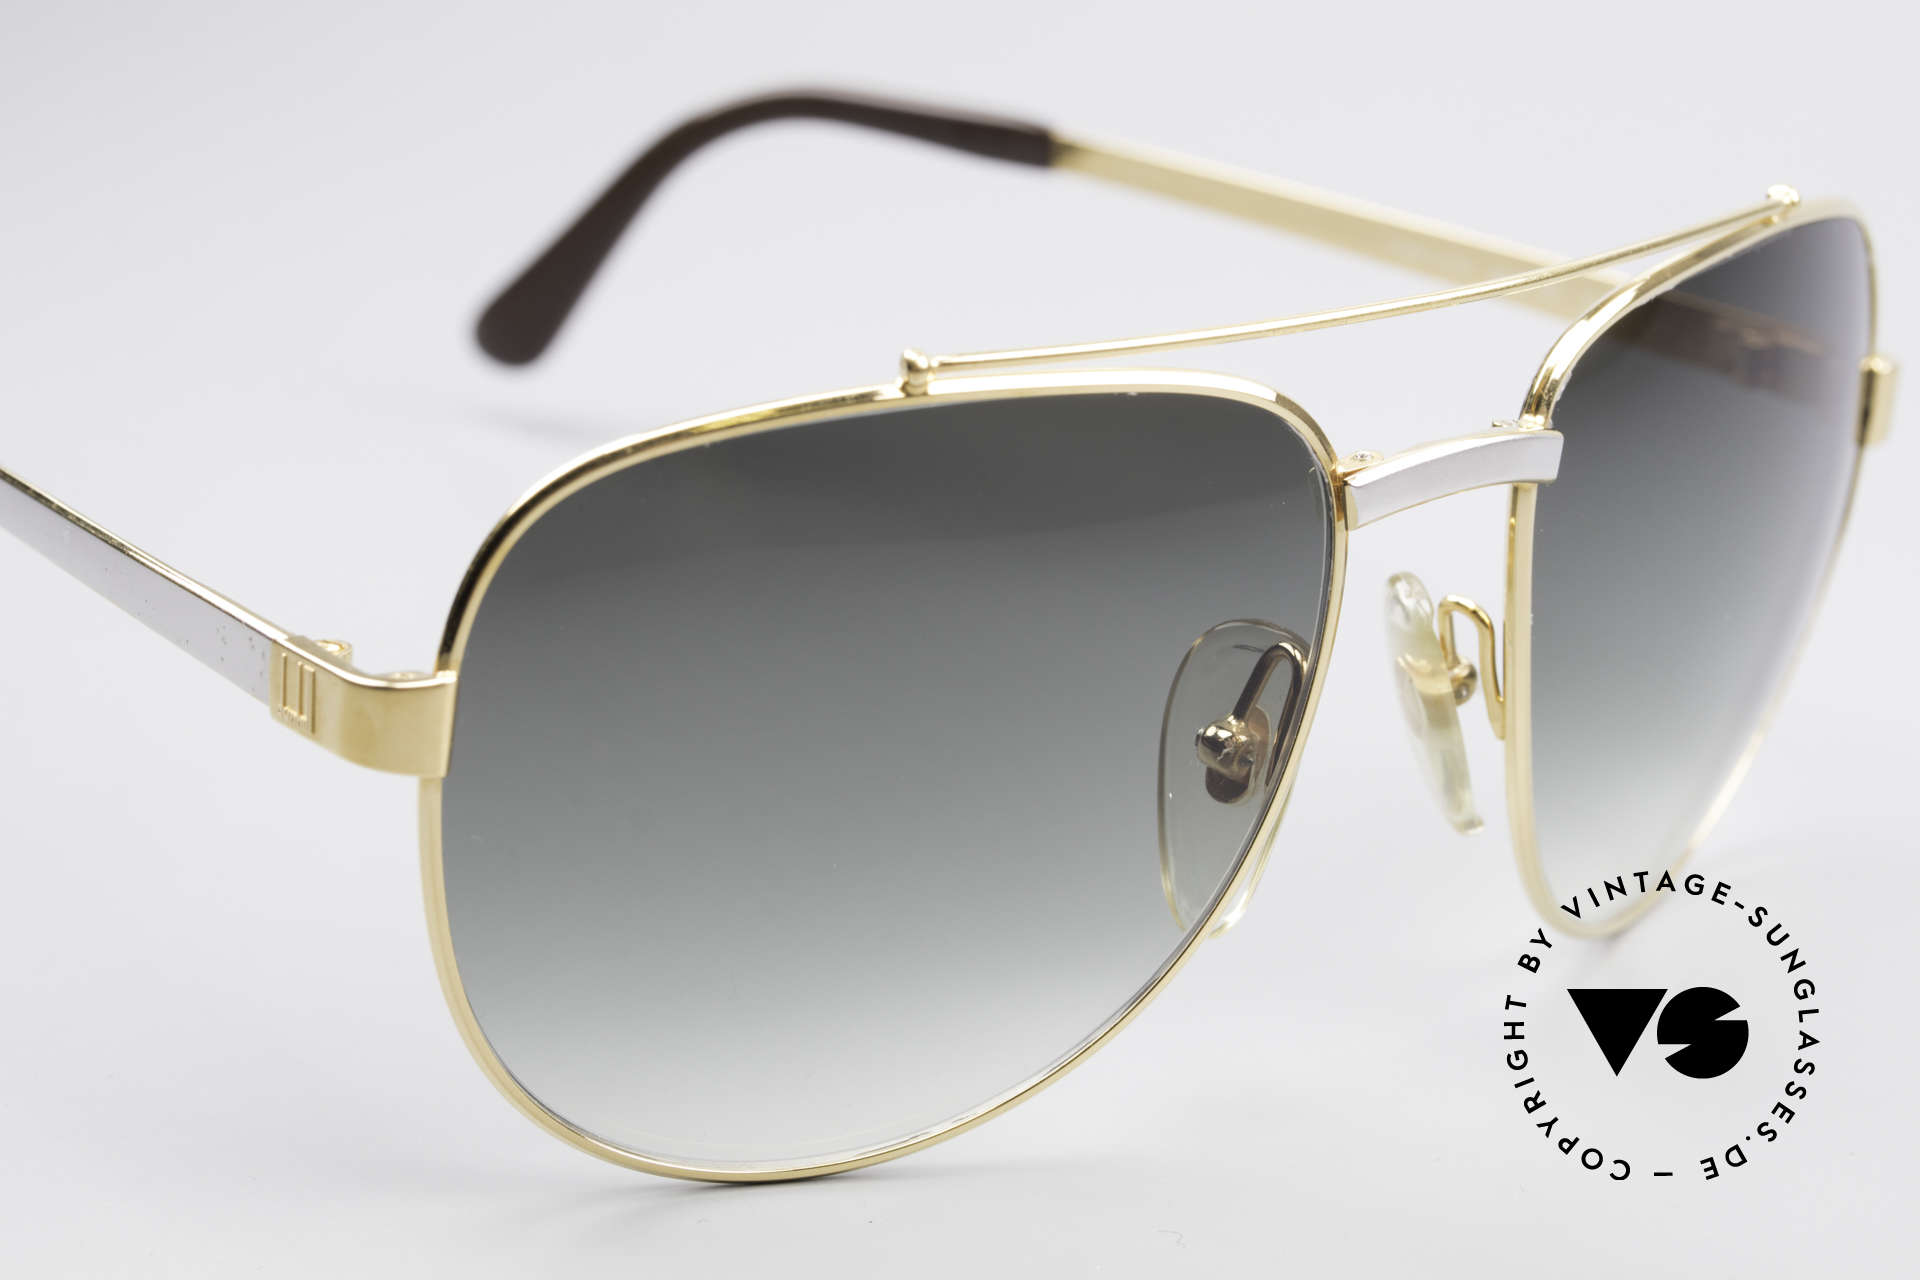 Dunhill 6029 Gold Plated Luxury Sunglasses, unworn (like all our VINTAGE luxury sunglasses), Made for Men